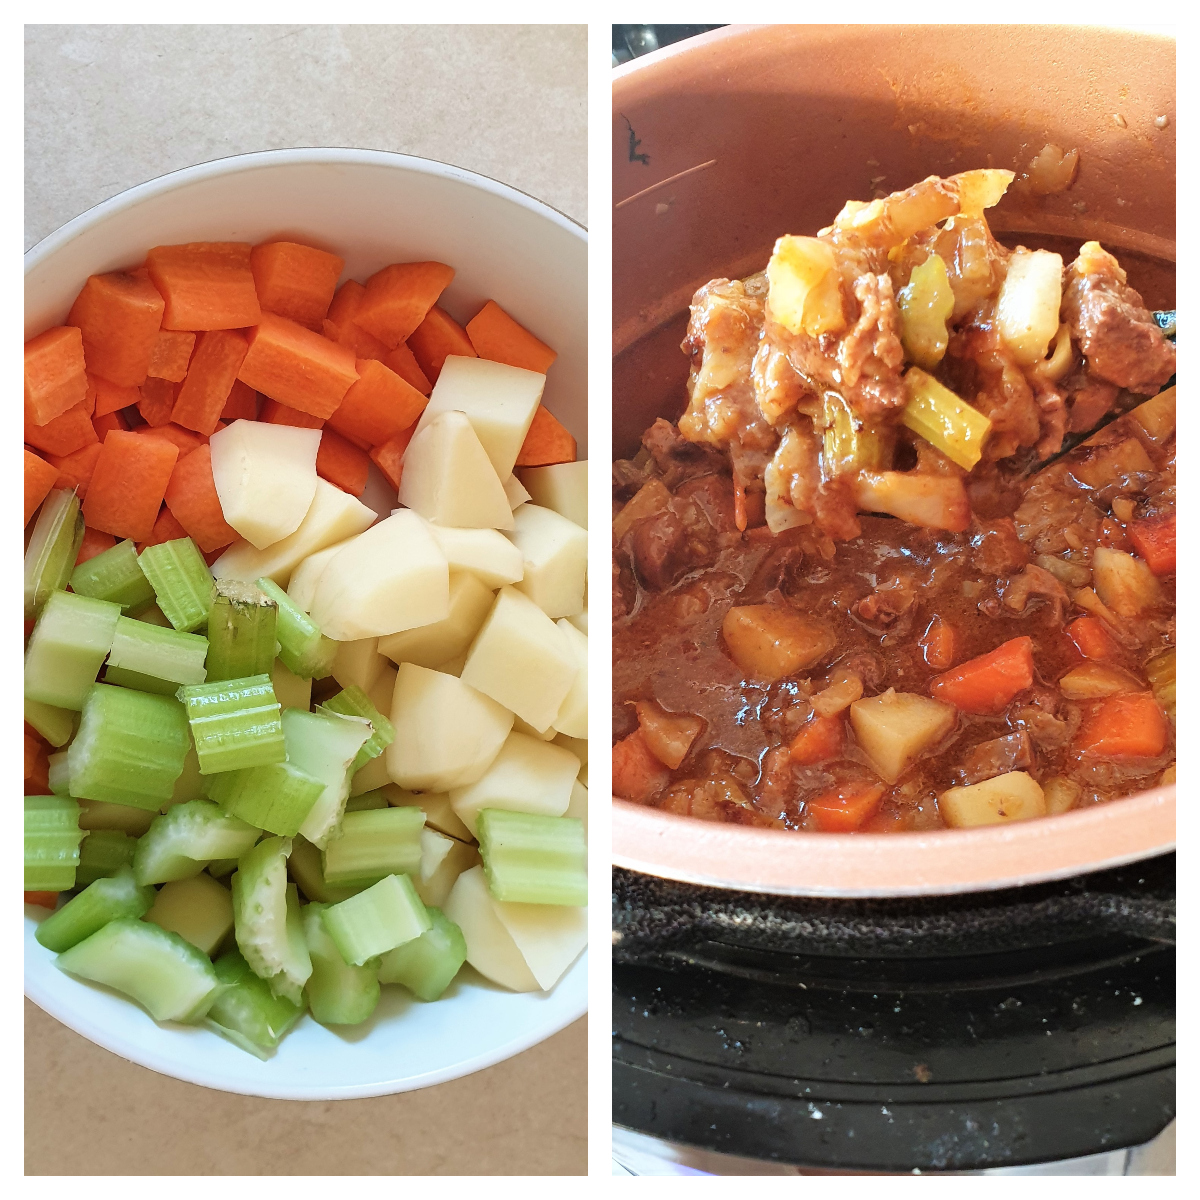 Carrots, celery and potatoes being added to steak and kidney pie filling.